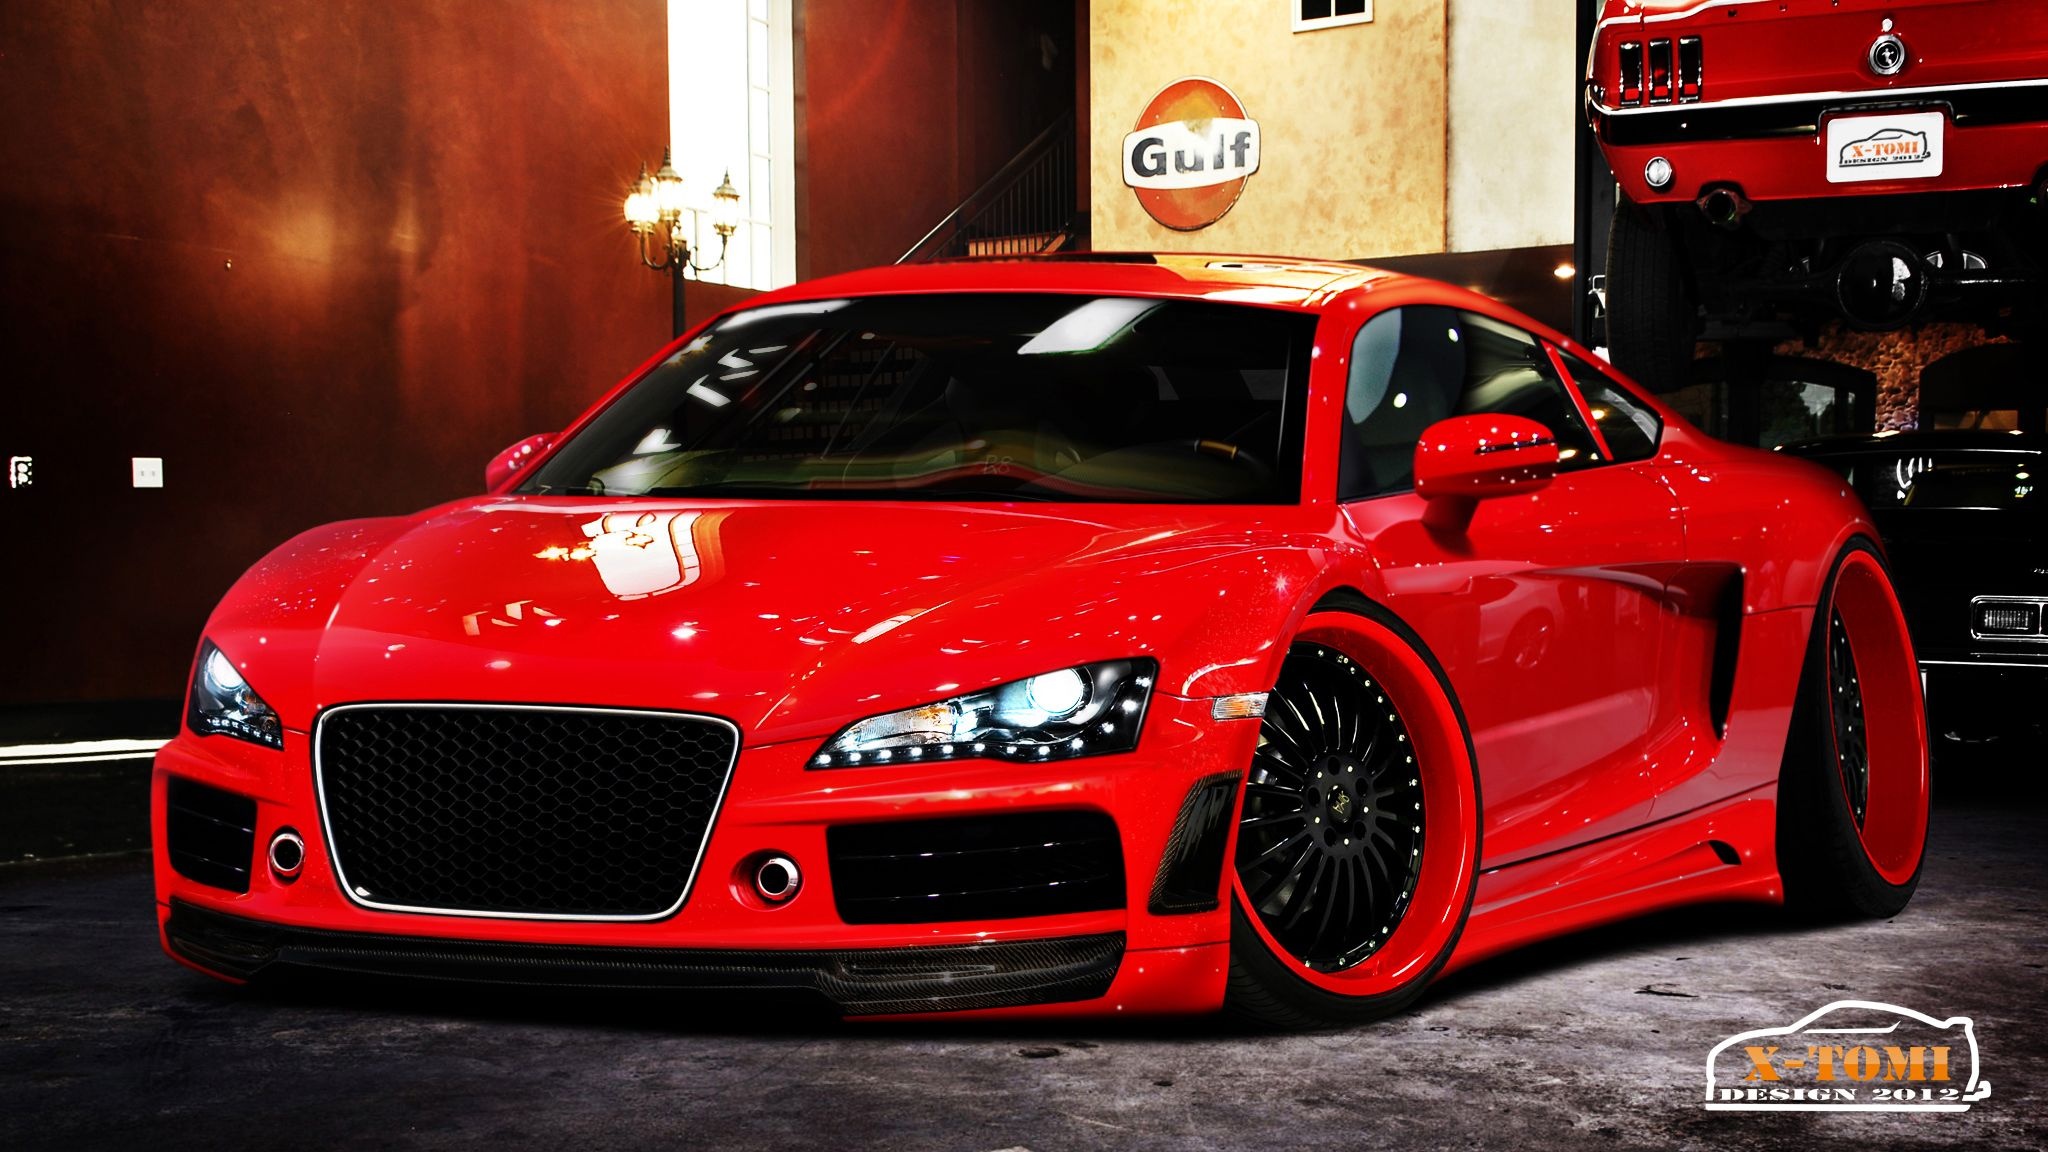 audi r8 v12 tdi concept by xtomi tuning i like http extreme audi go fast. Black Bedroom Furniture Sets. Home Design Ideas